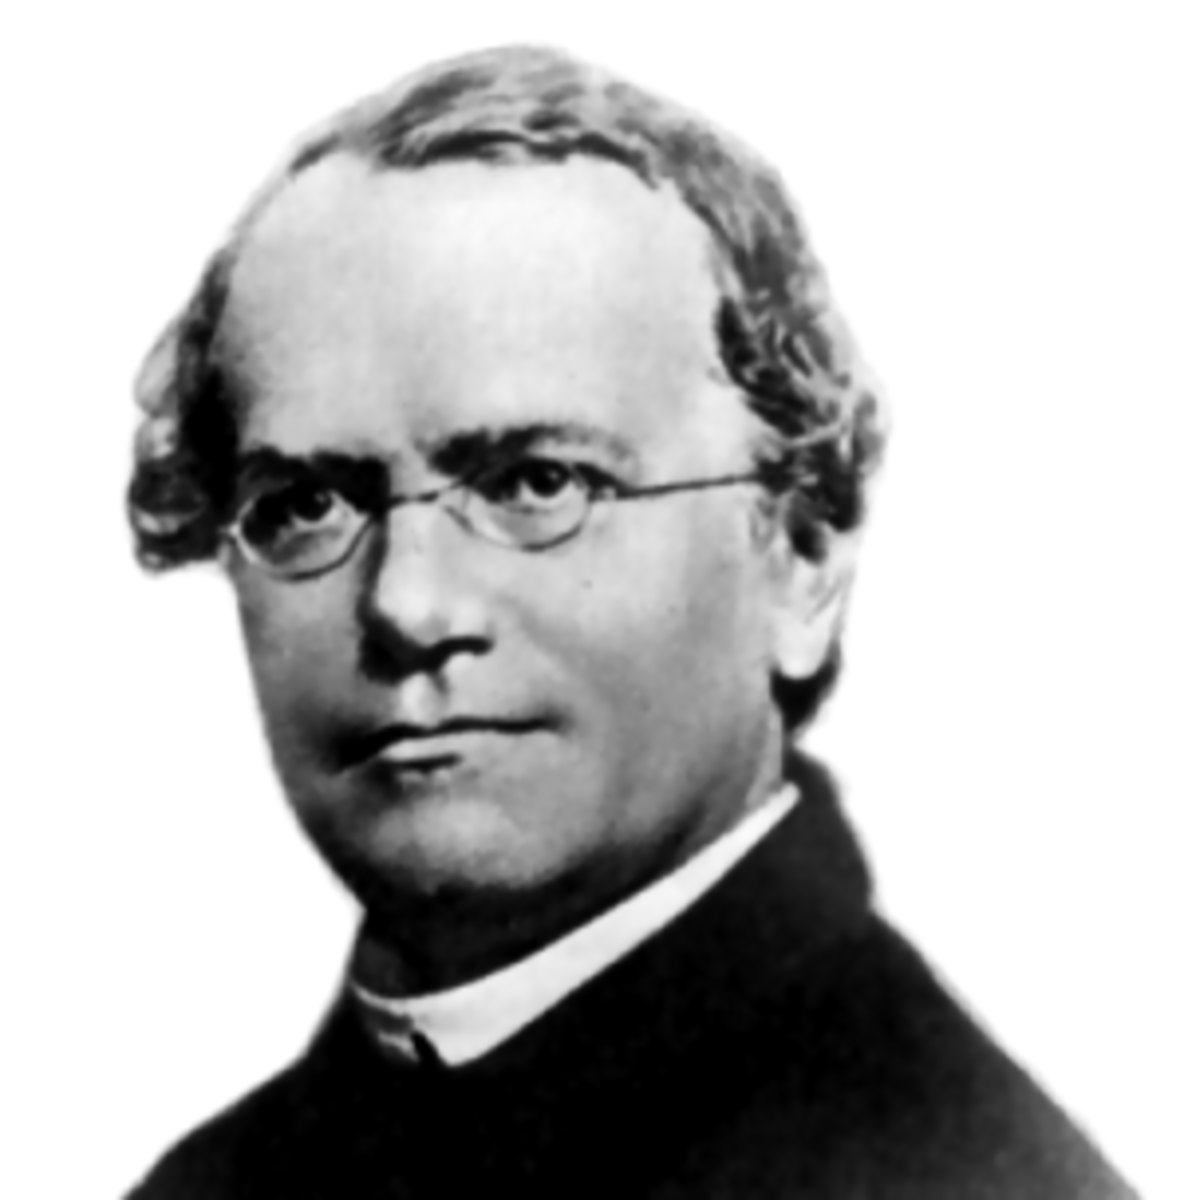 Biography of Johann Gregor Mendel - The Father of Genetics